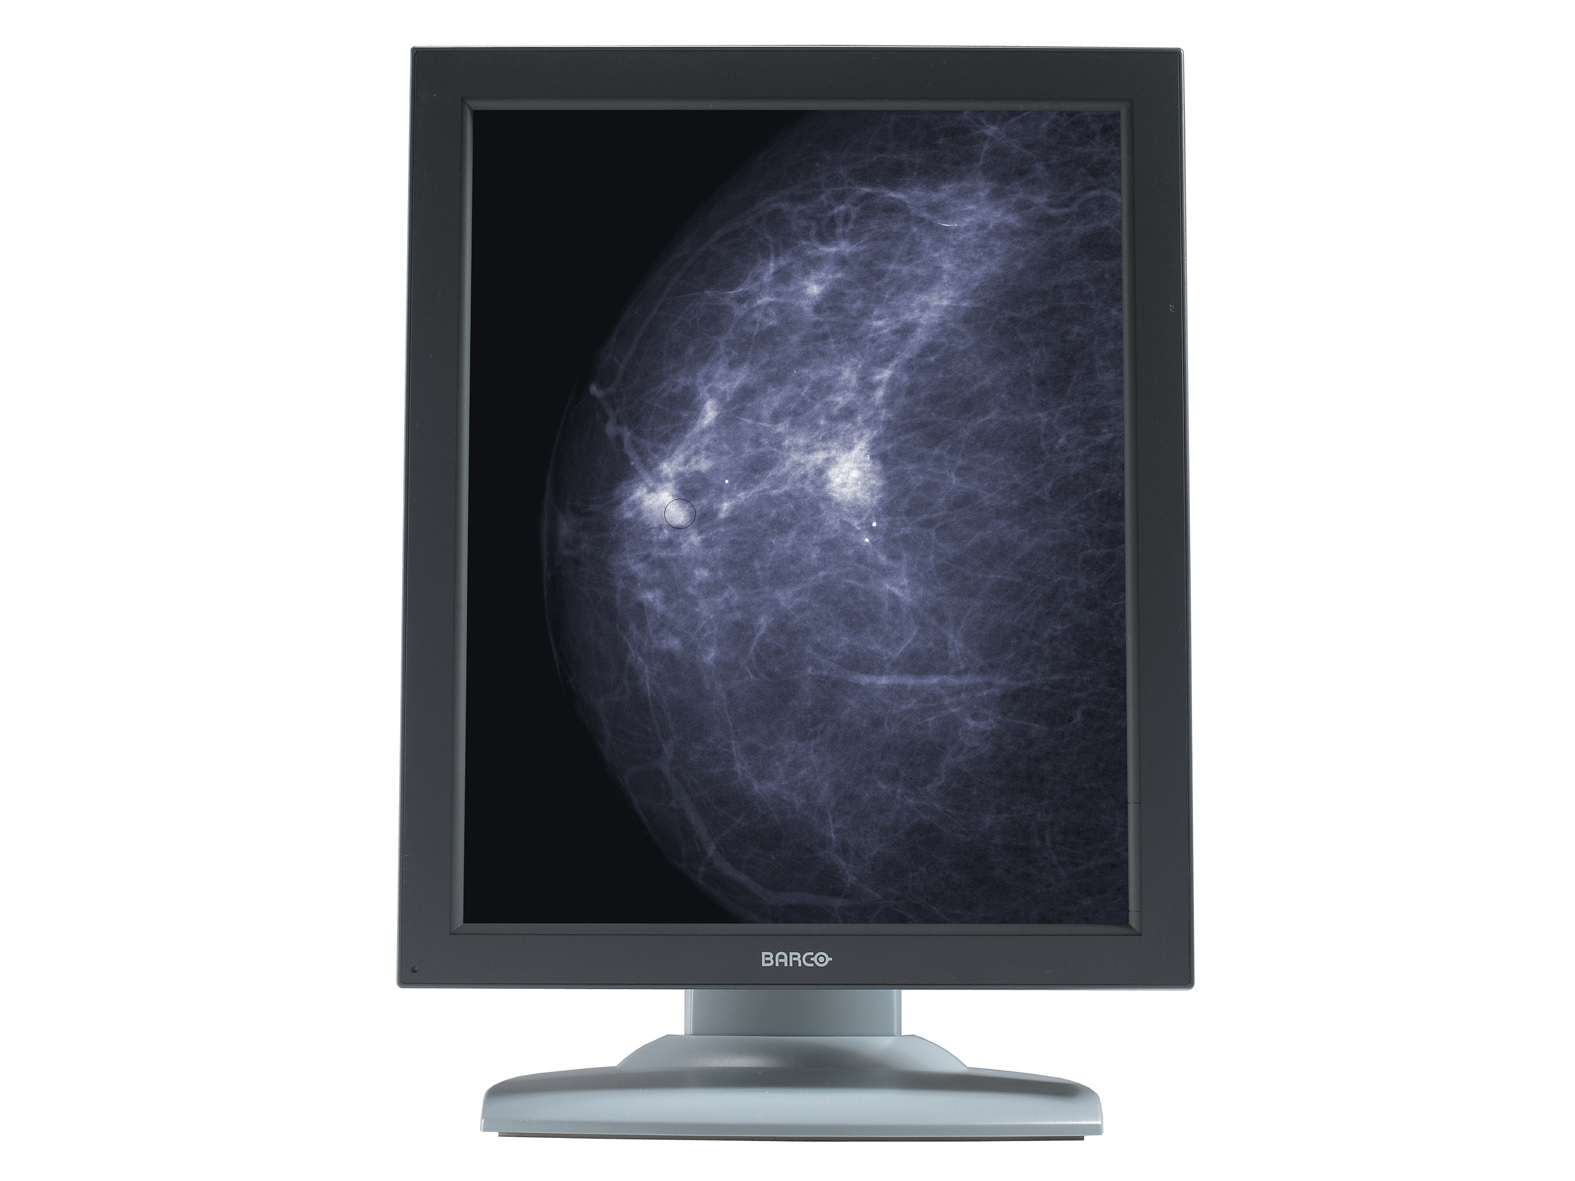 BARCO MFGD 3220D DRIVER FOR MAC